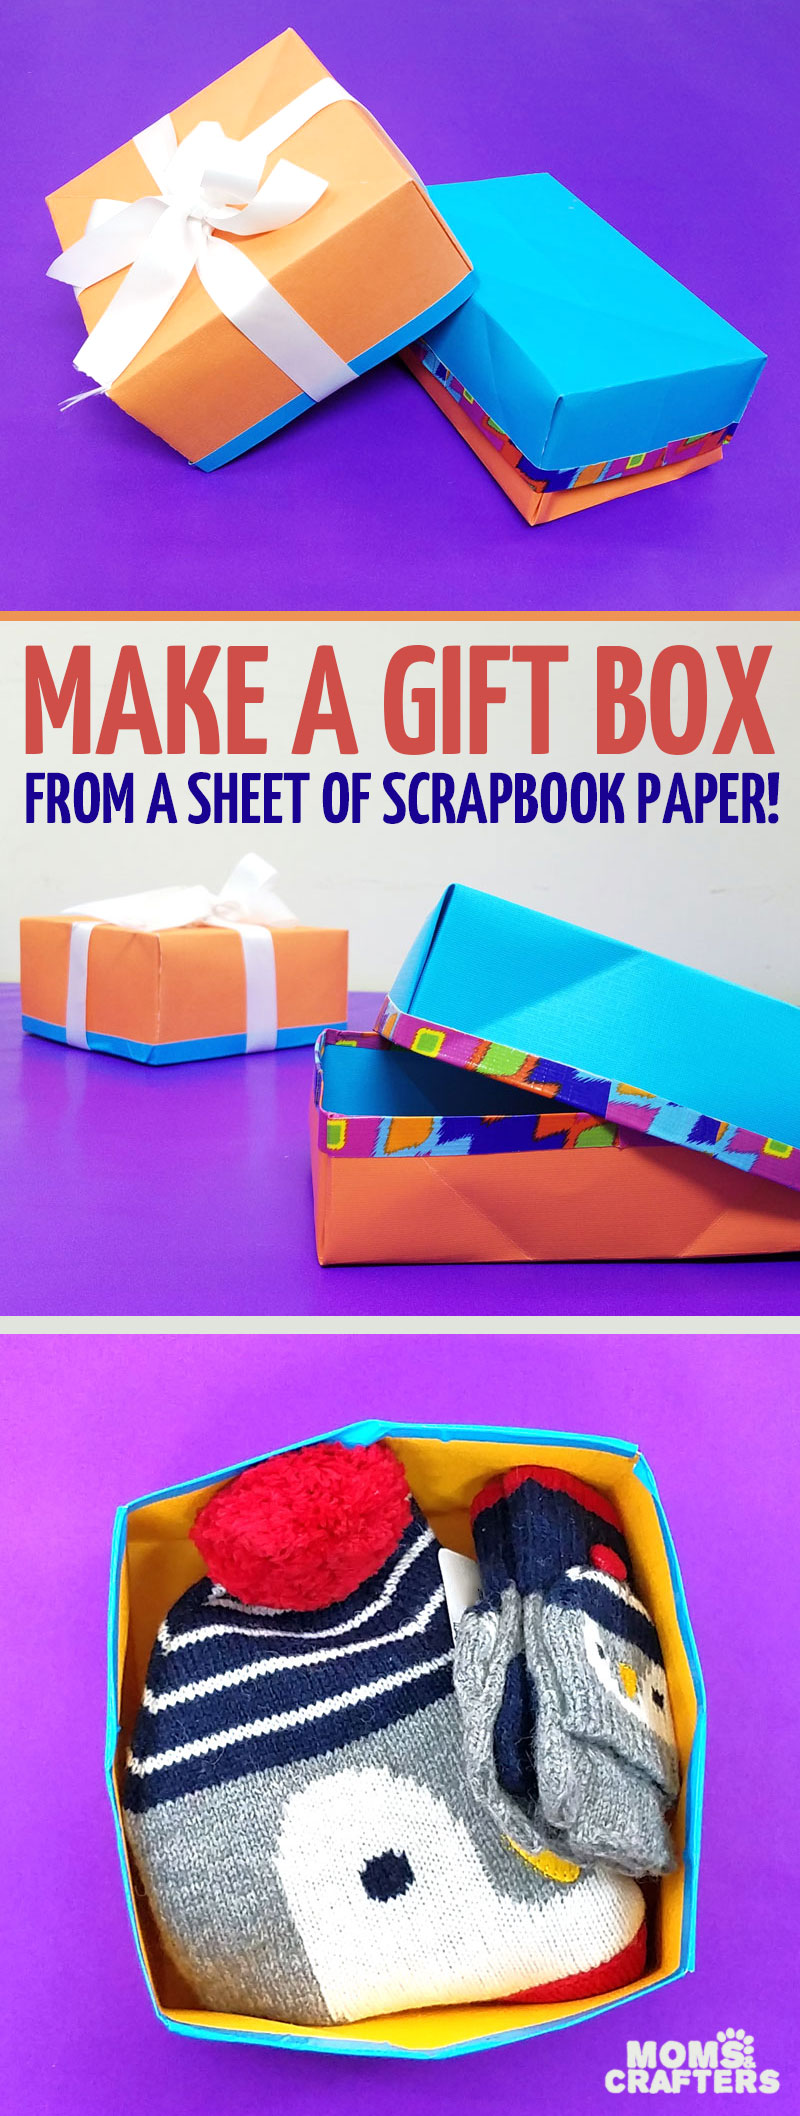 Make this easy DIY gift box from a single sheet of scrapbook paper - isn't that a super cool papercraft for Christmas or Hanukkah - or for gifts any time of year? I love this easy gift wrap idea and paper crafts for kids, teens, tweens, or adults. #papercraft #origami #papercrafts #diy #giftbox